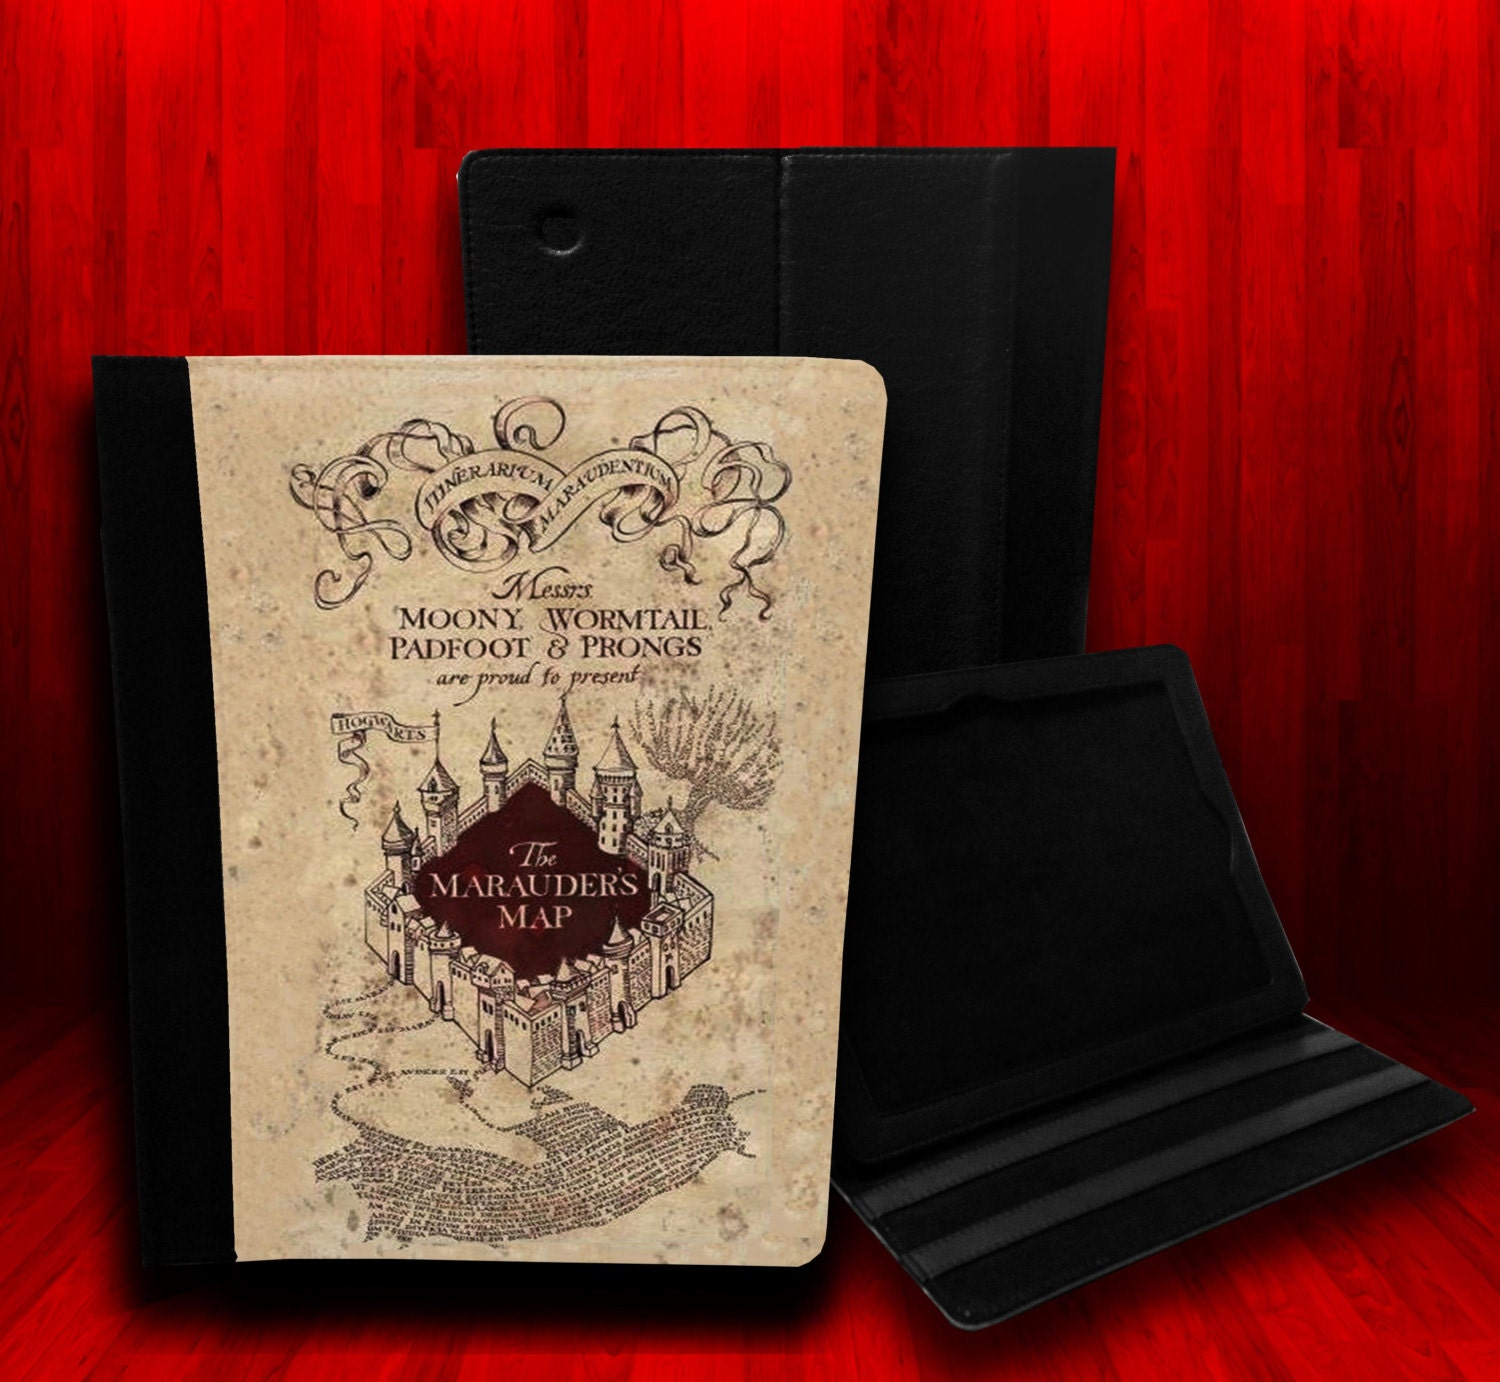 Harry Potter Inspired The Marauders Map Leather Case For iPad 2, iPad 3 and iPad 4